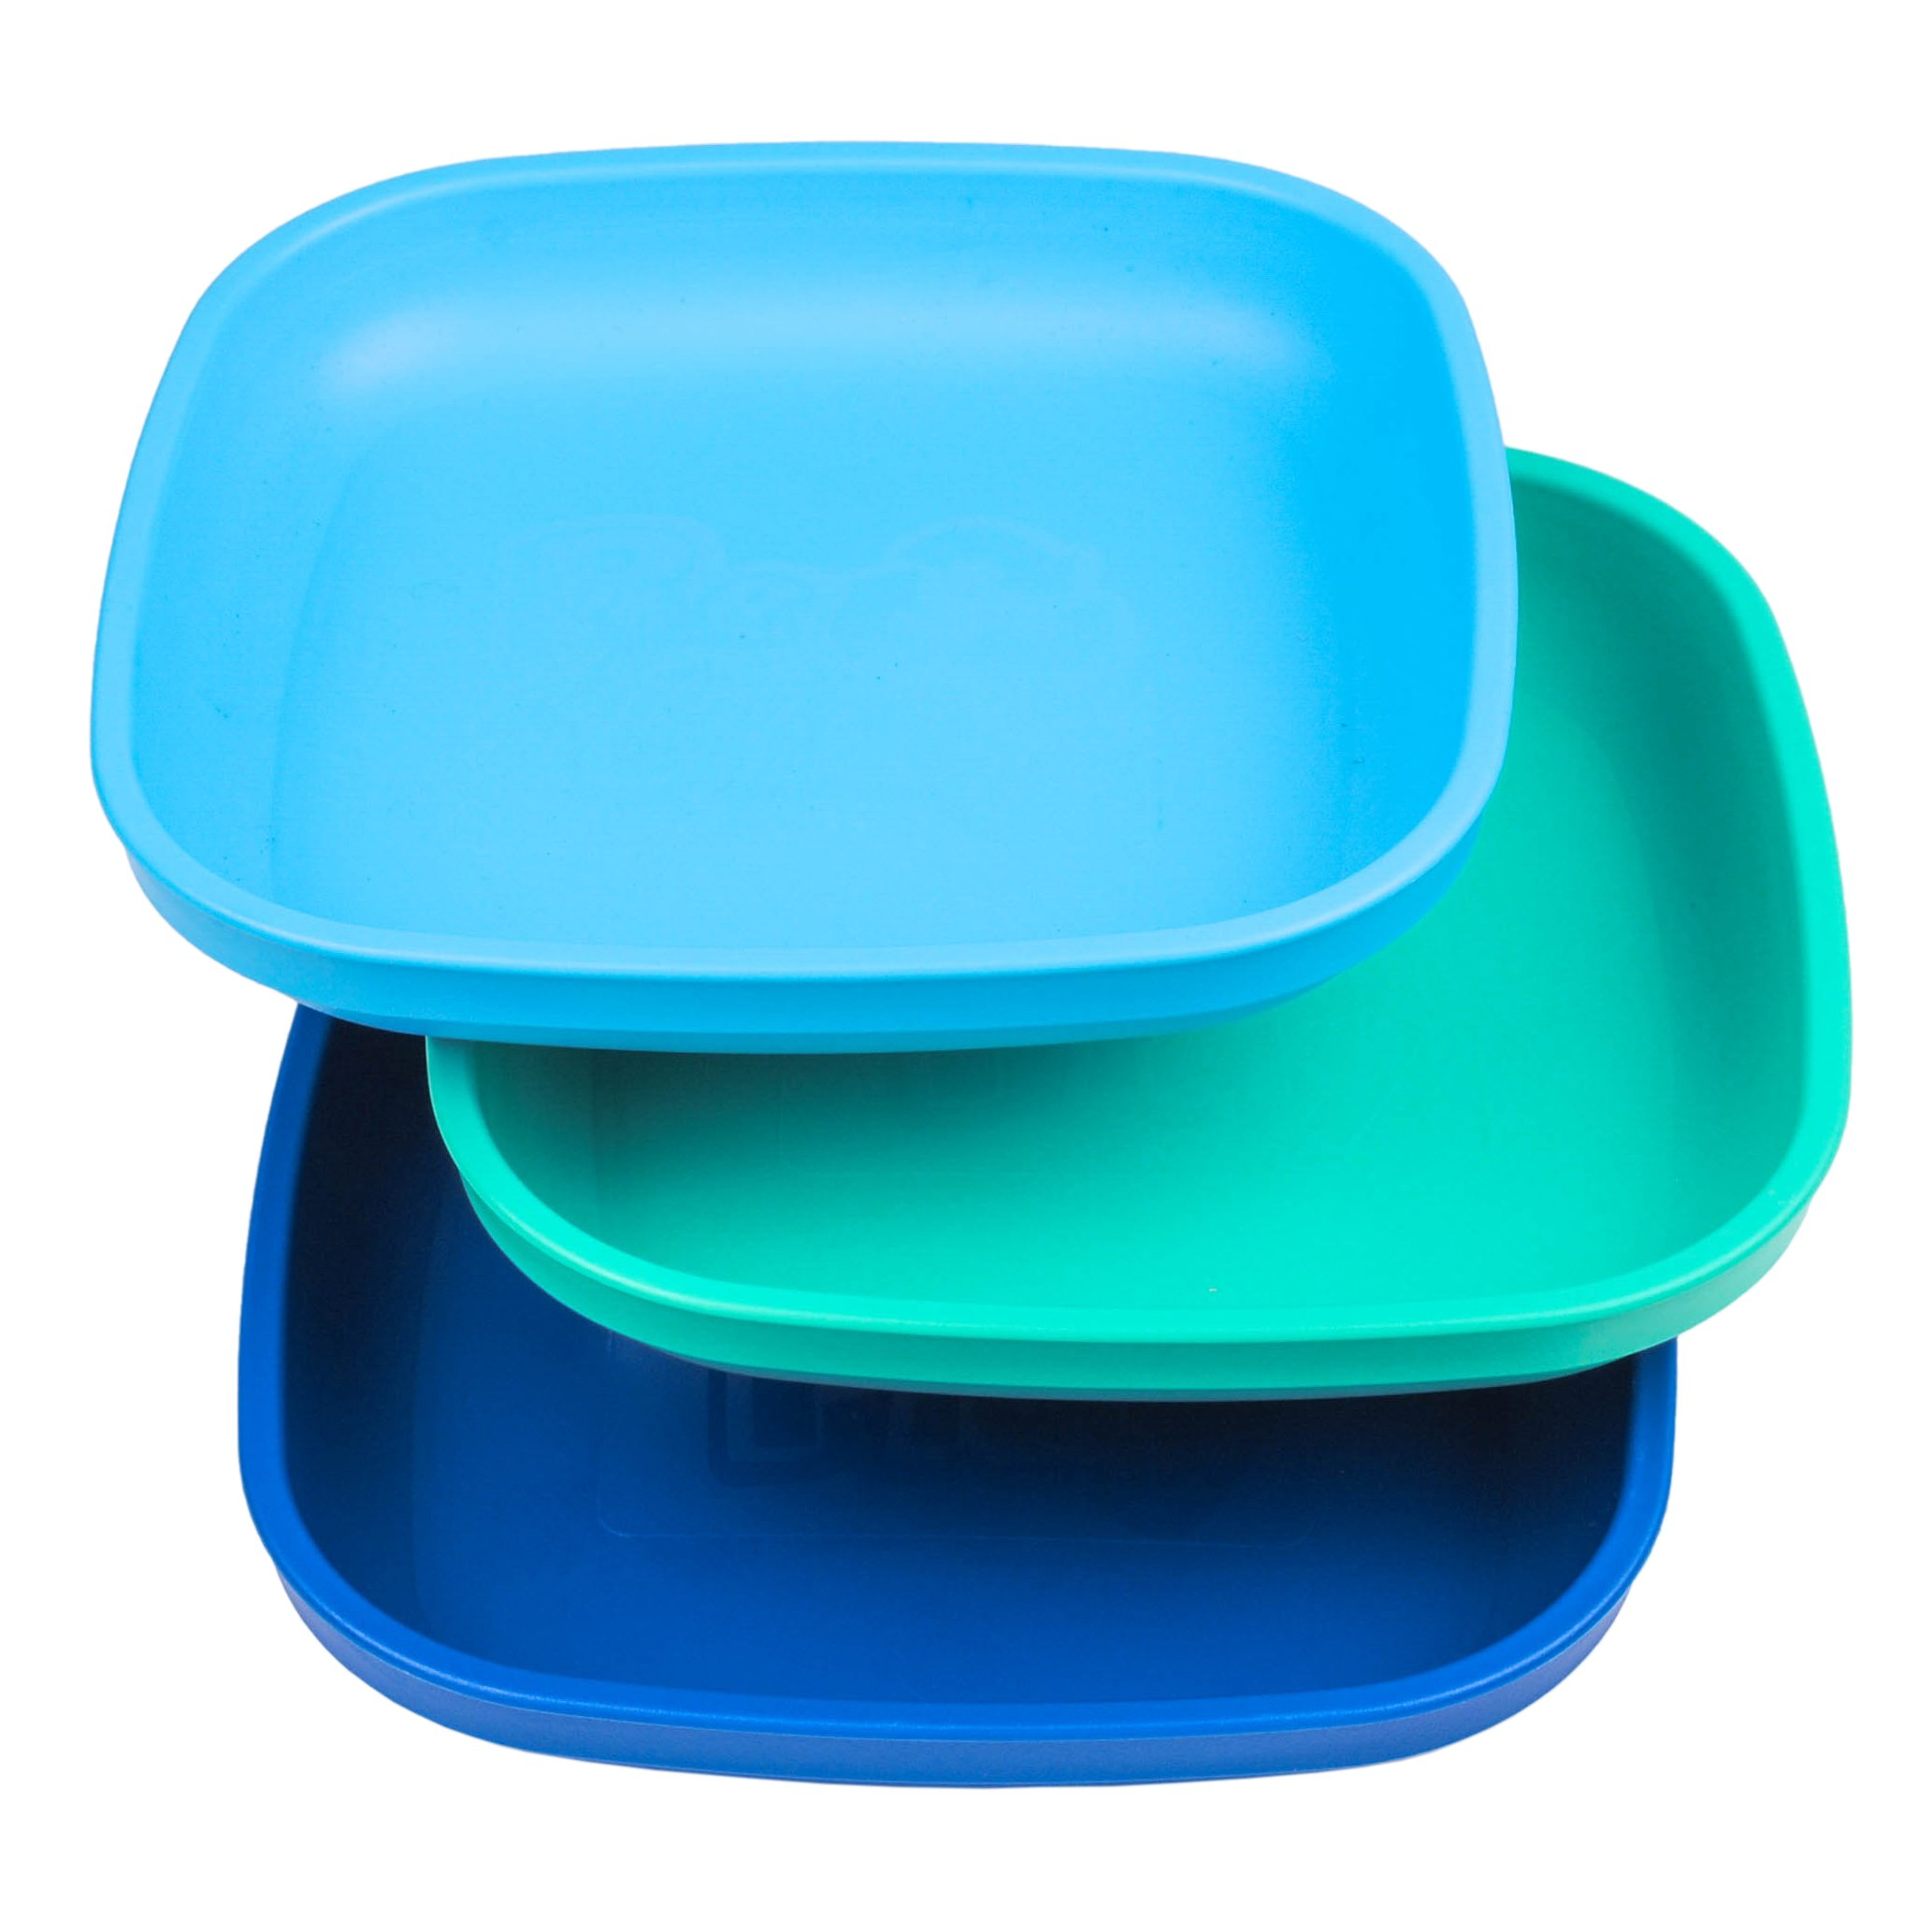 Re-Play Made In USA 3pk Plates with Deep Sides for Easy Baby, Toddler, Child Feeding - Sky Blue, Aqua, Navy Blue (True Blue)